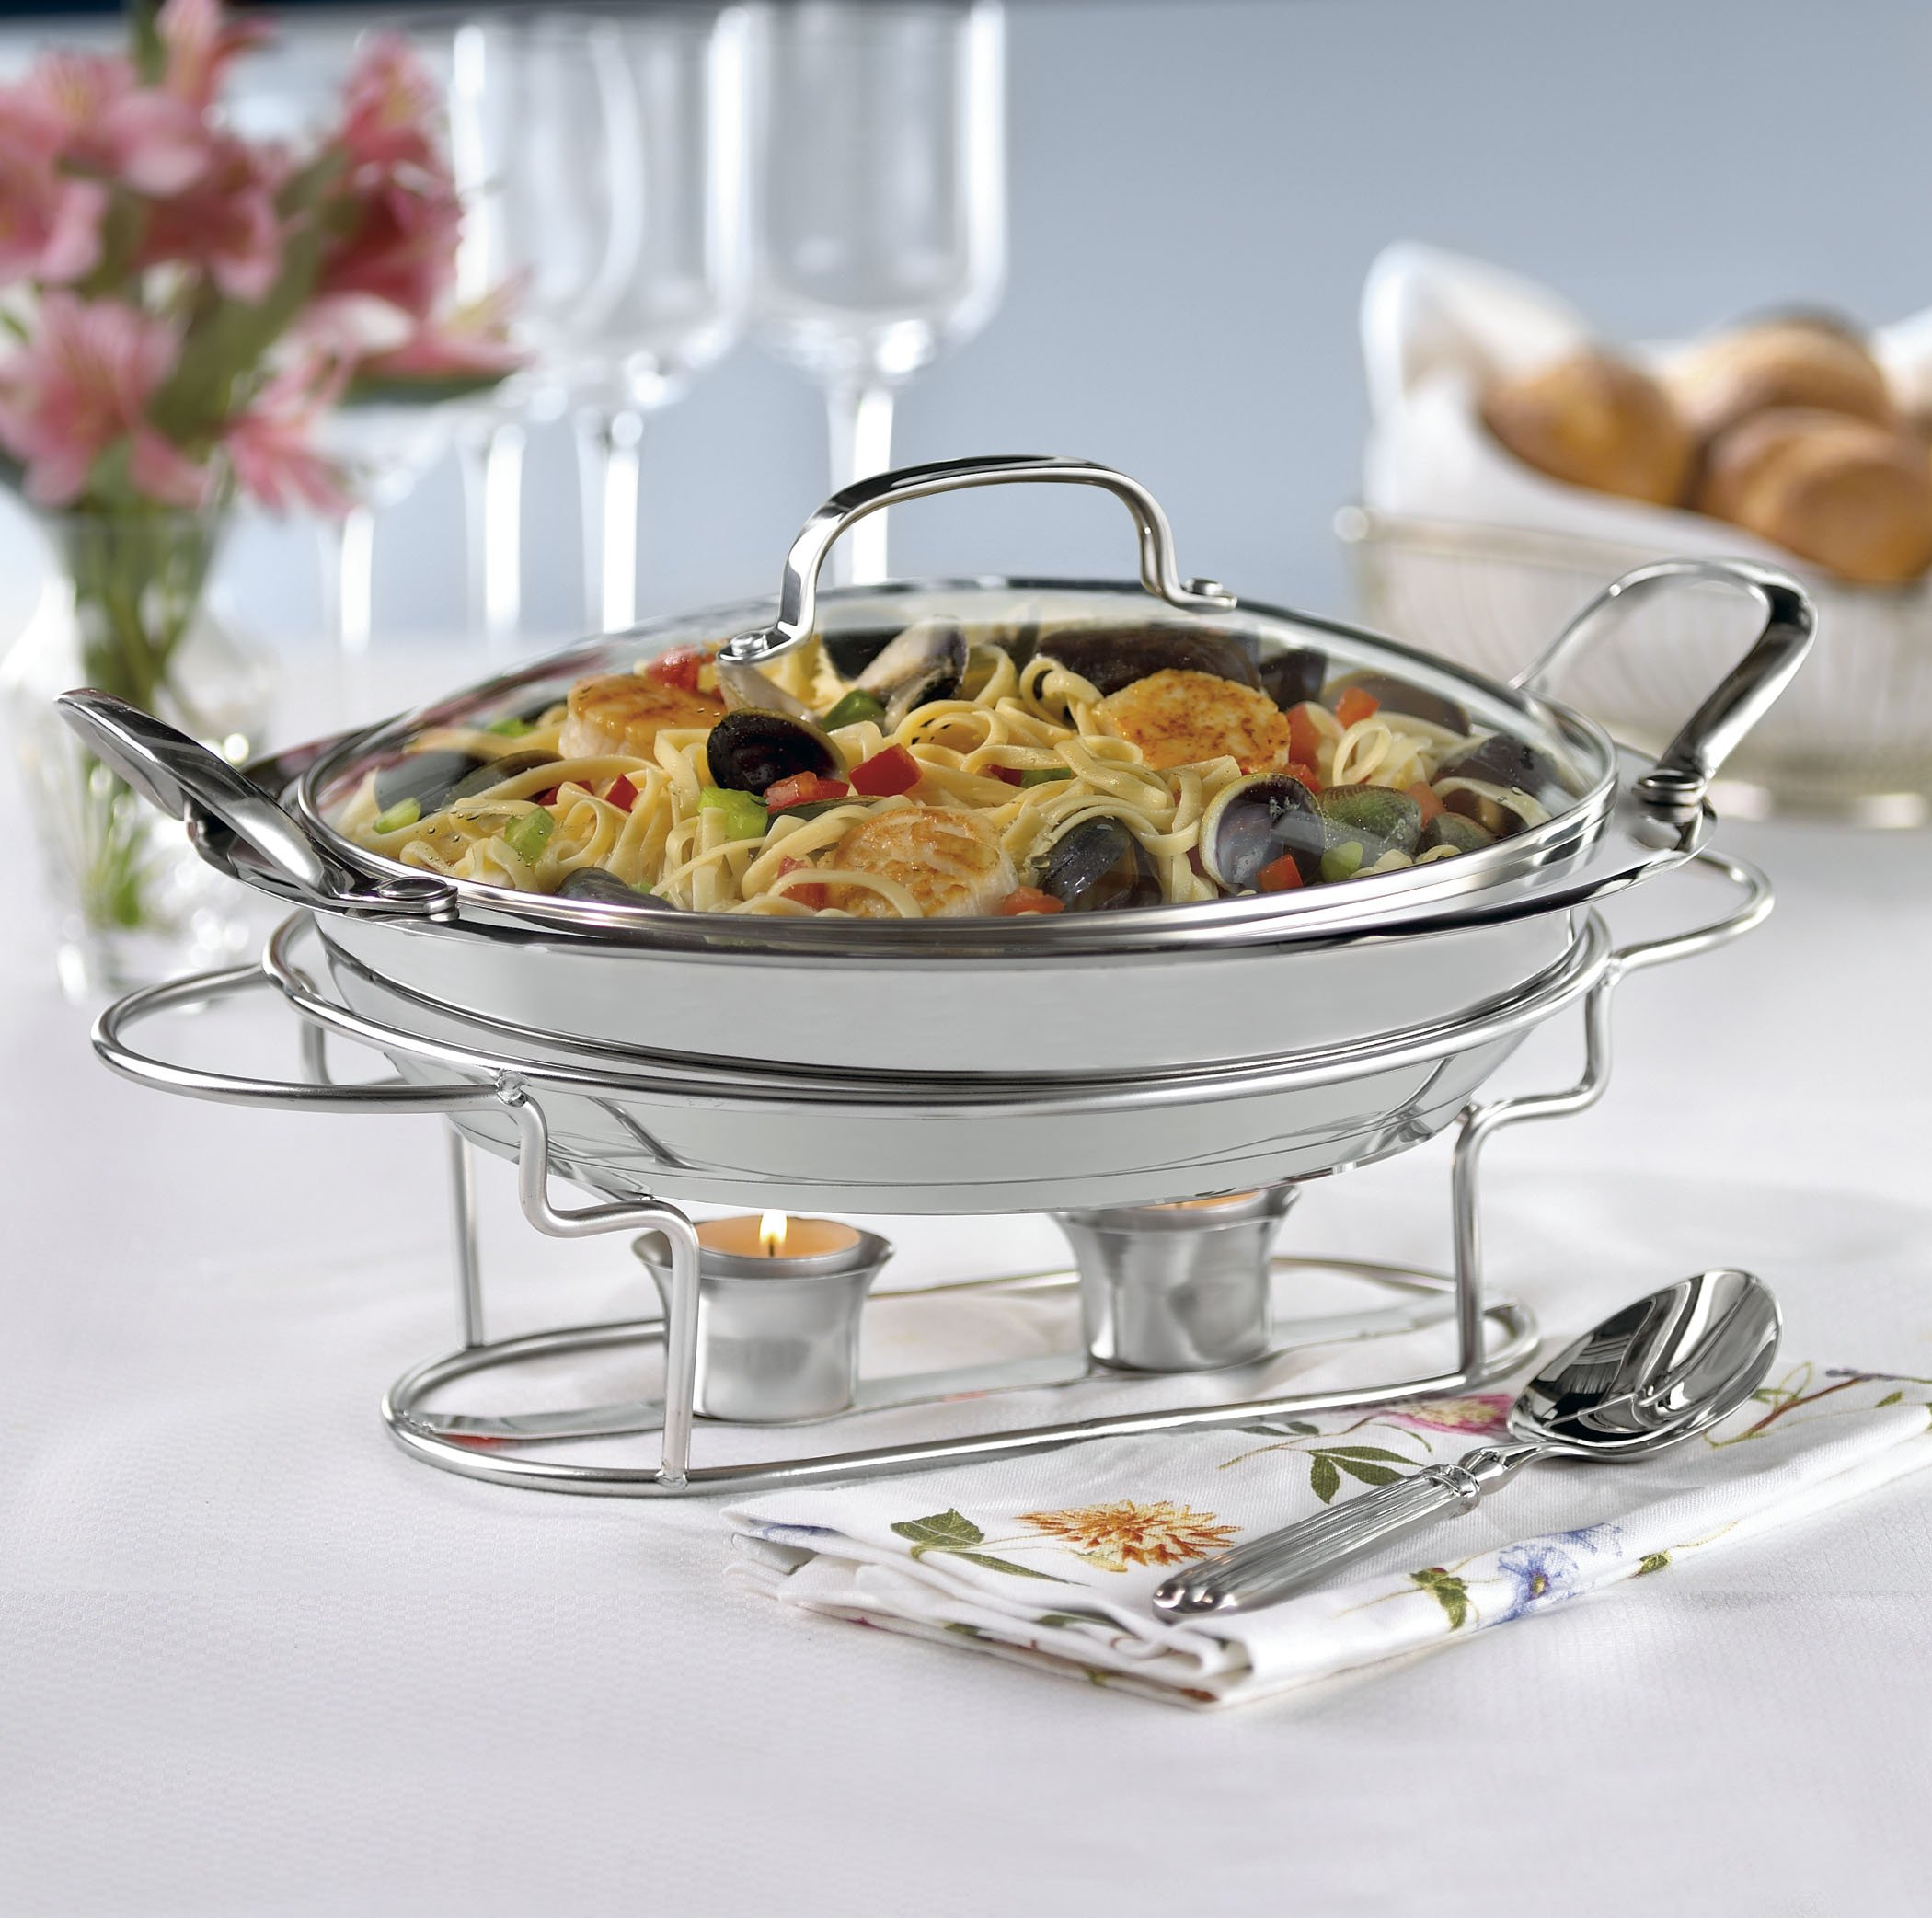 Cuisinart 7BSR-28 Stainless 11-Inch Round Buffet Servers by Cuisinart